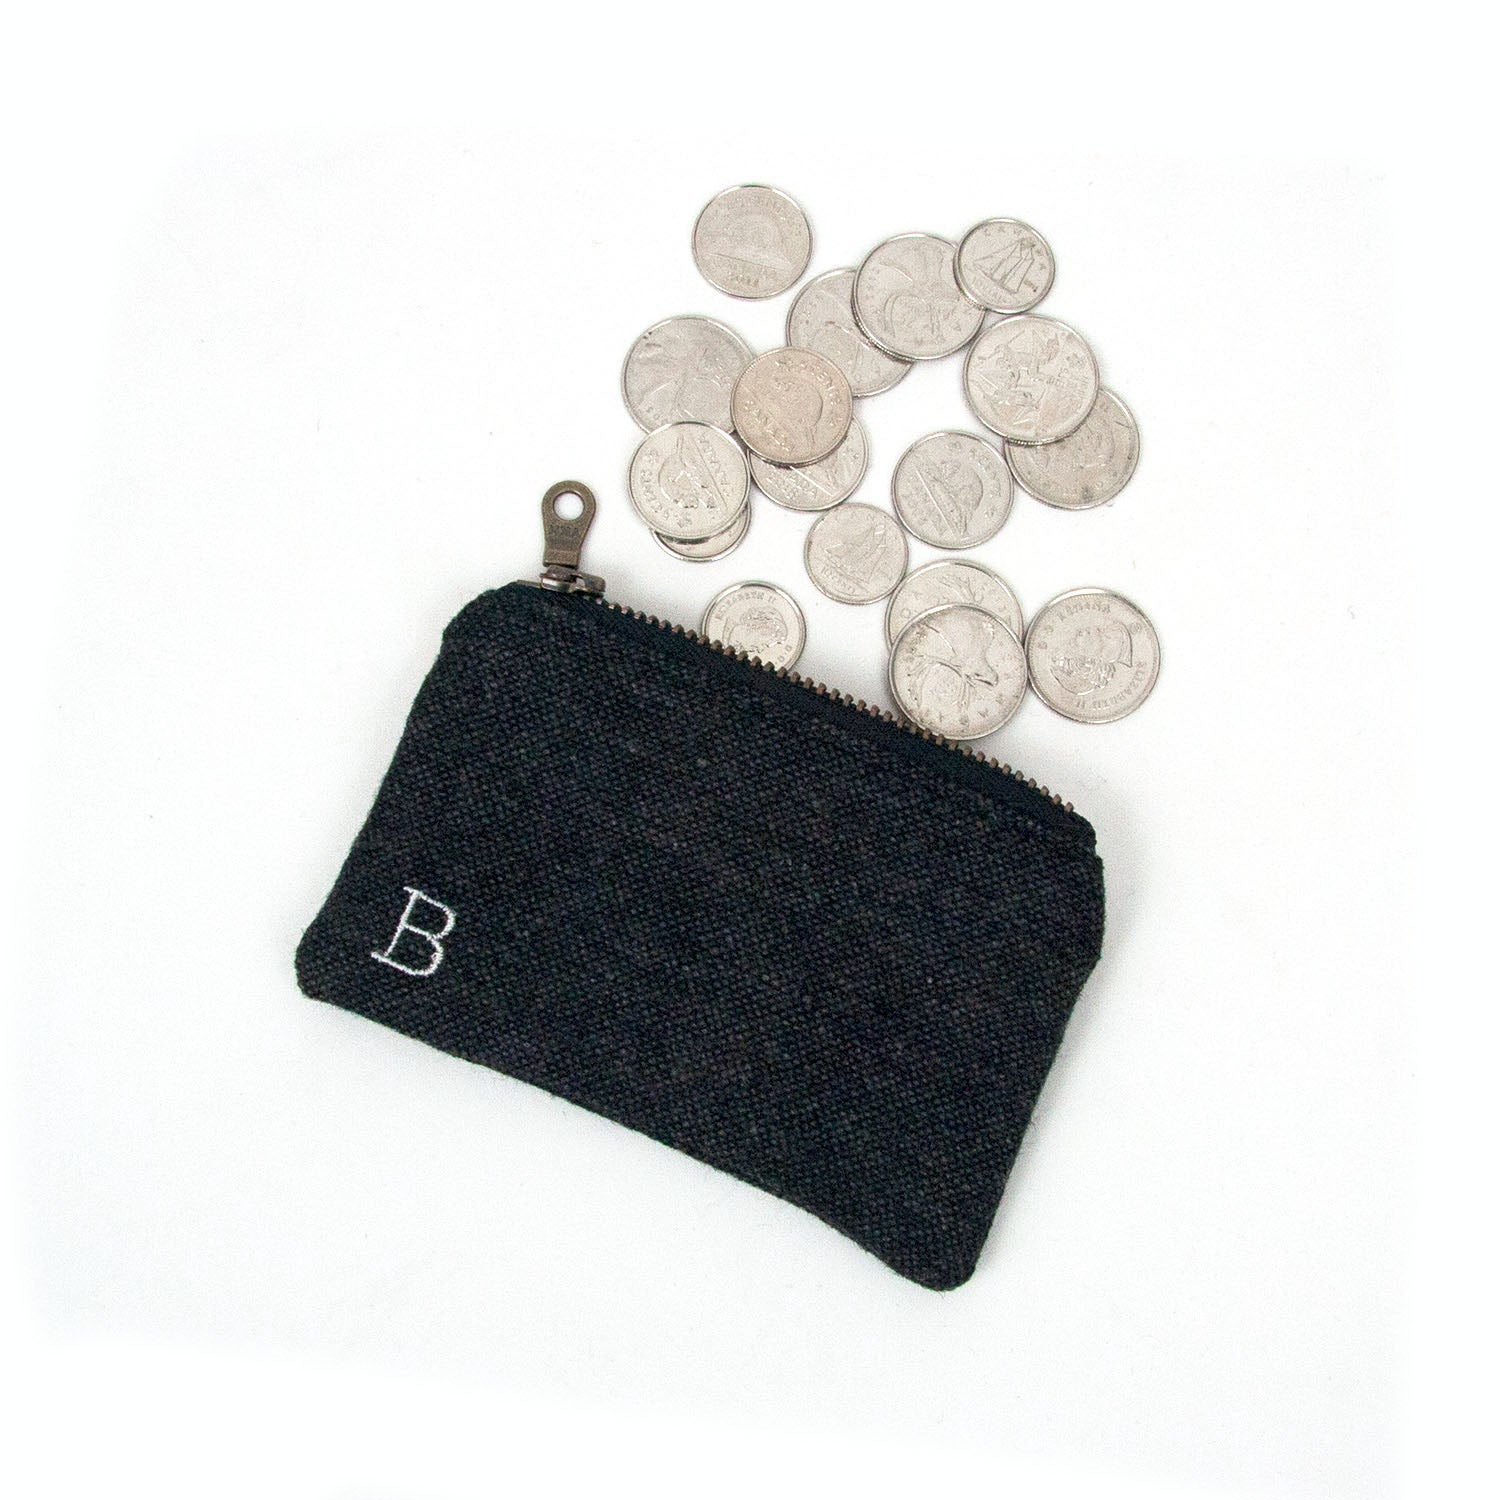 Personalized Coin Purse - Pepper Grey